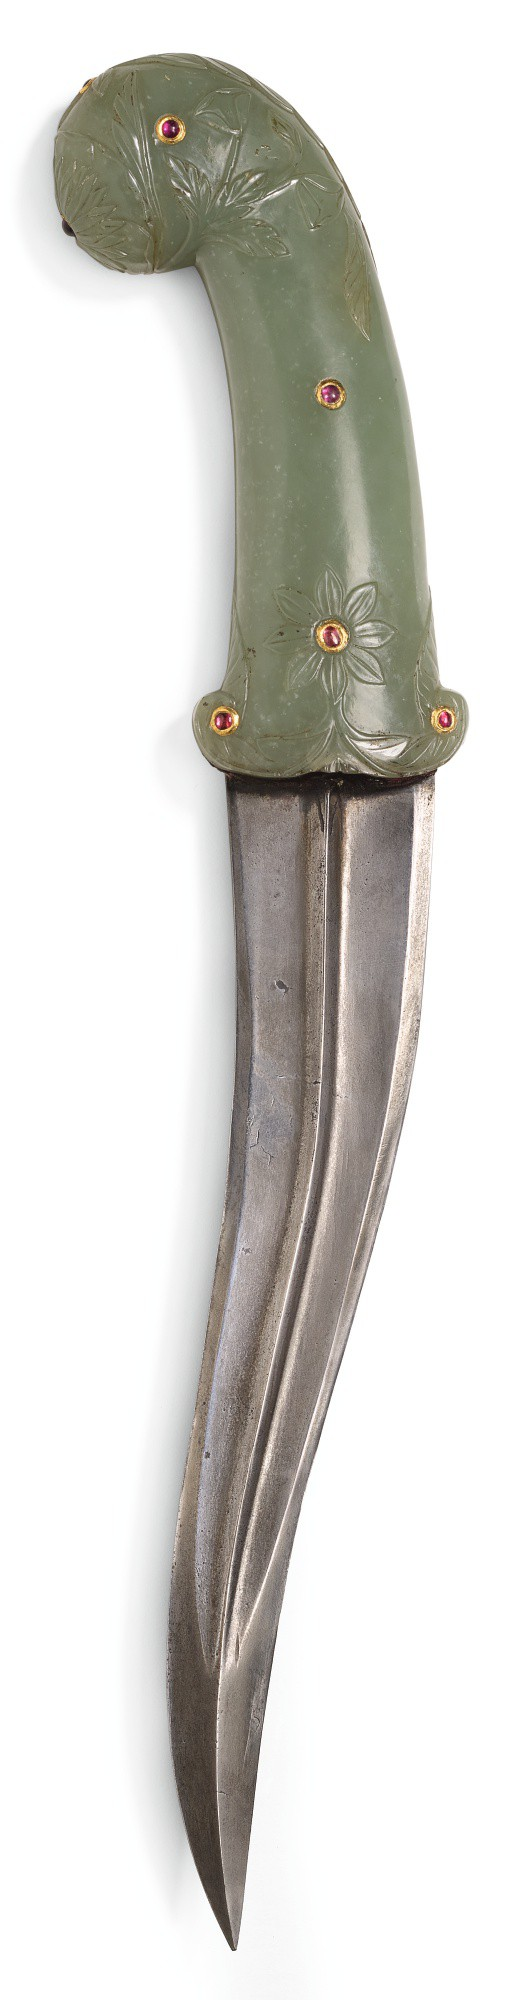 A MUGHAL JEWELLED JADE-HILTED DAGGER (KHANJAR), INDIA, LATE 18TH CENTURY